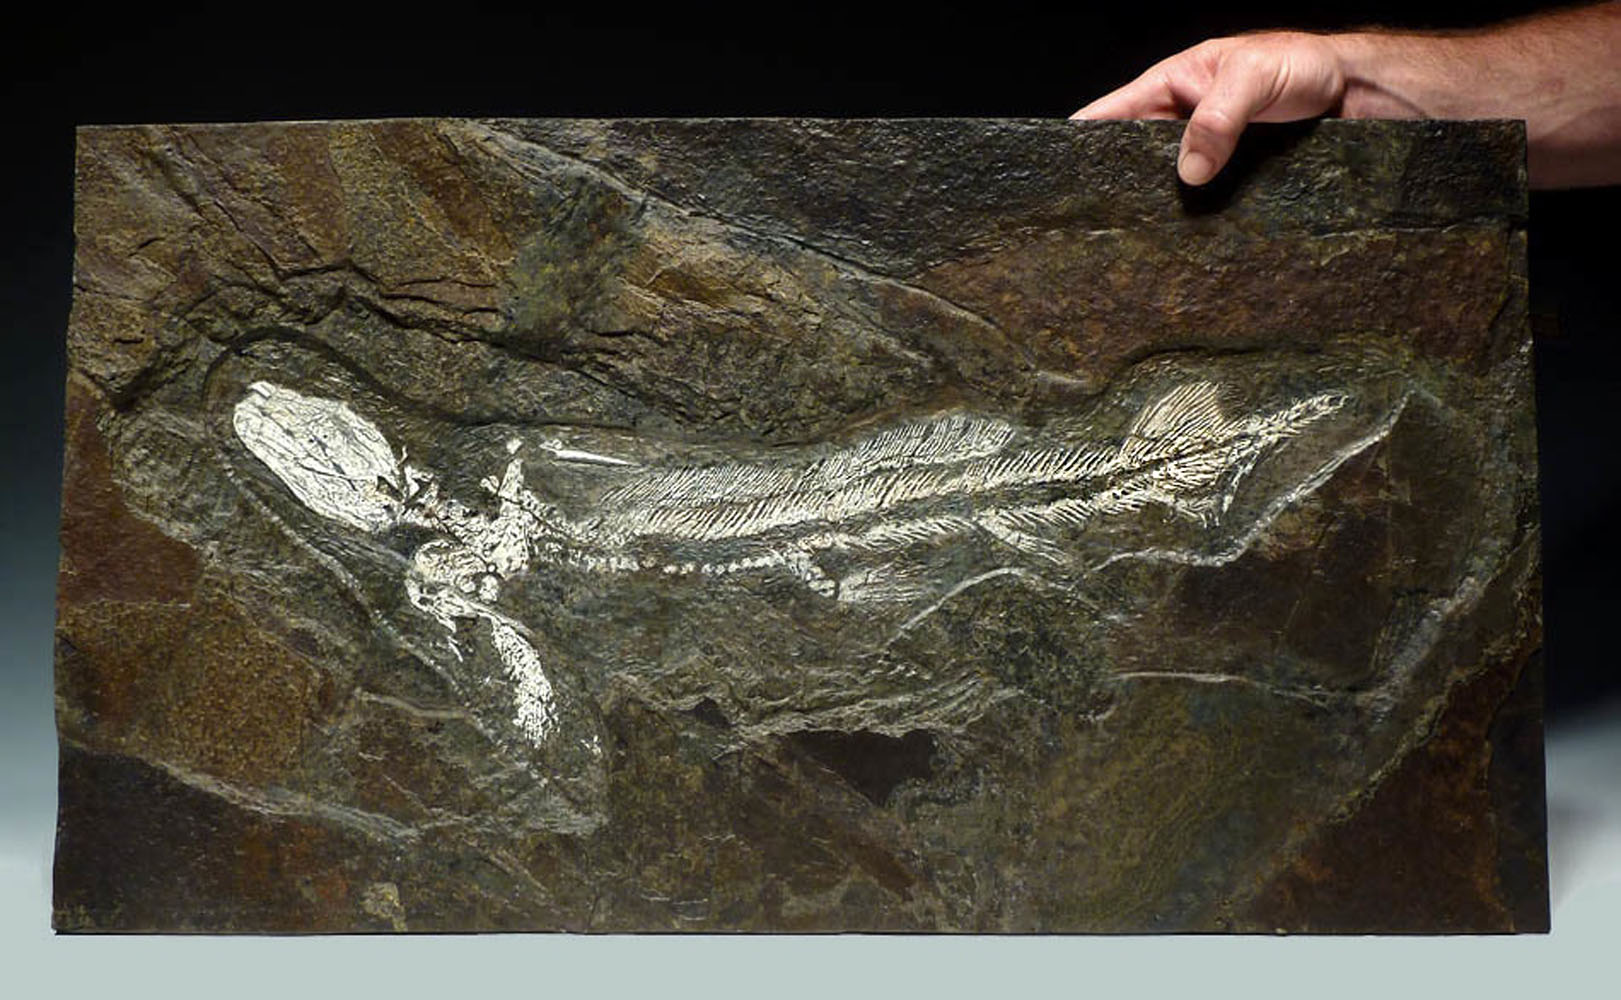 Fossilized prehistoric baby Orthacanthus shark, dating back to the Permian period 260 million years ago (before dinosaurs walked the Earth), discovered in Germany (est. $20,000-$30,000).